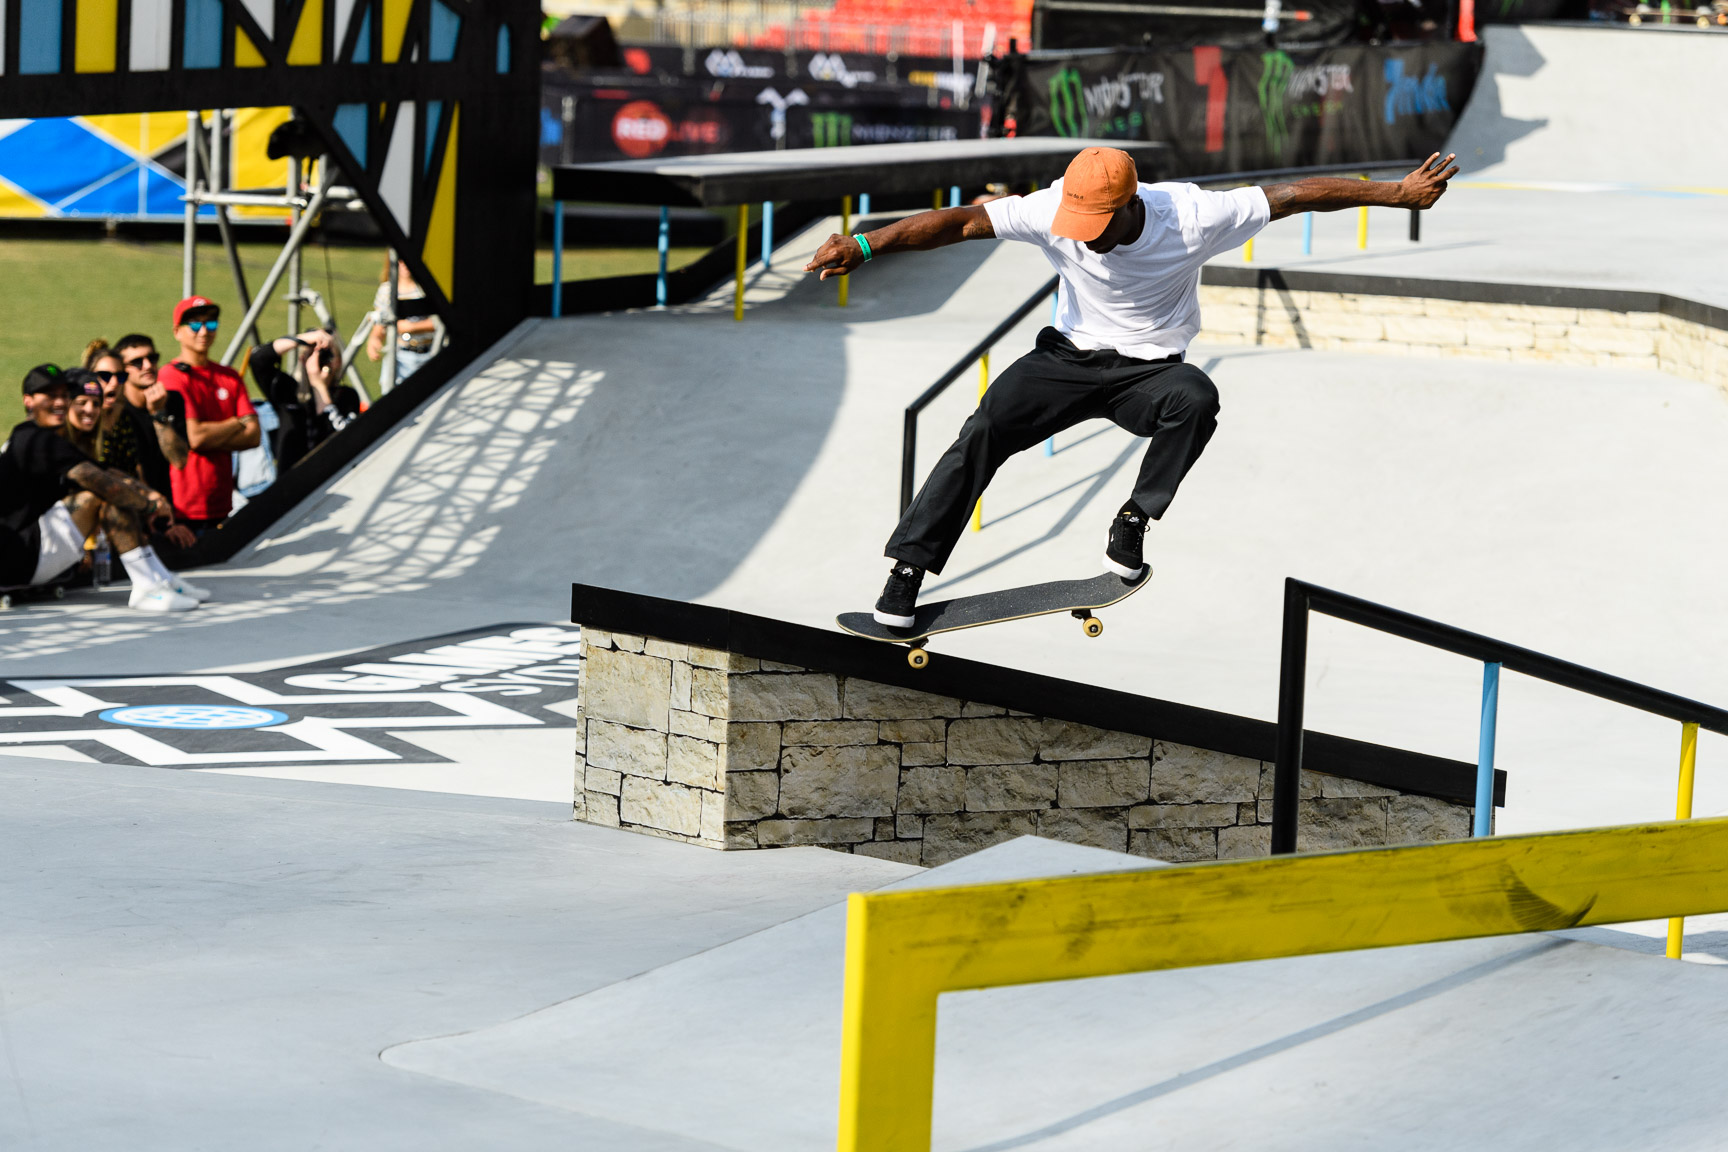 Dashawn Jordan, Skateboard Street Qualifier